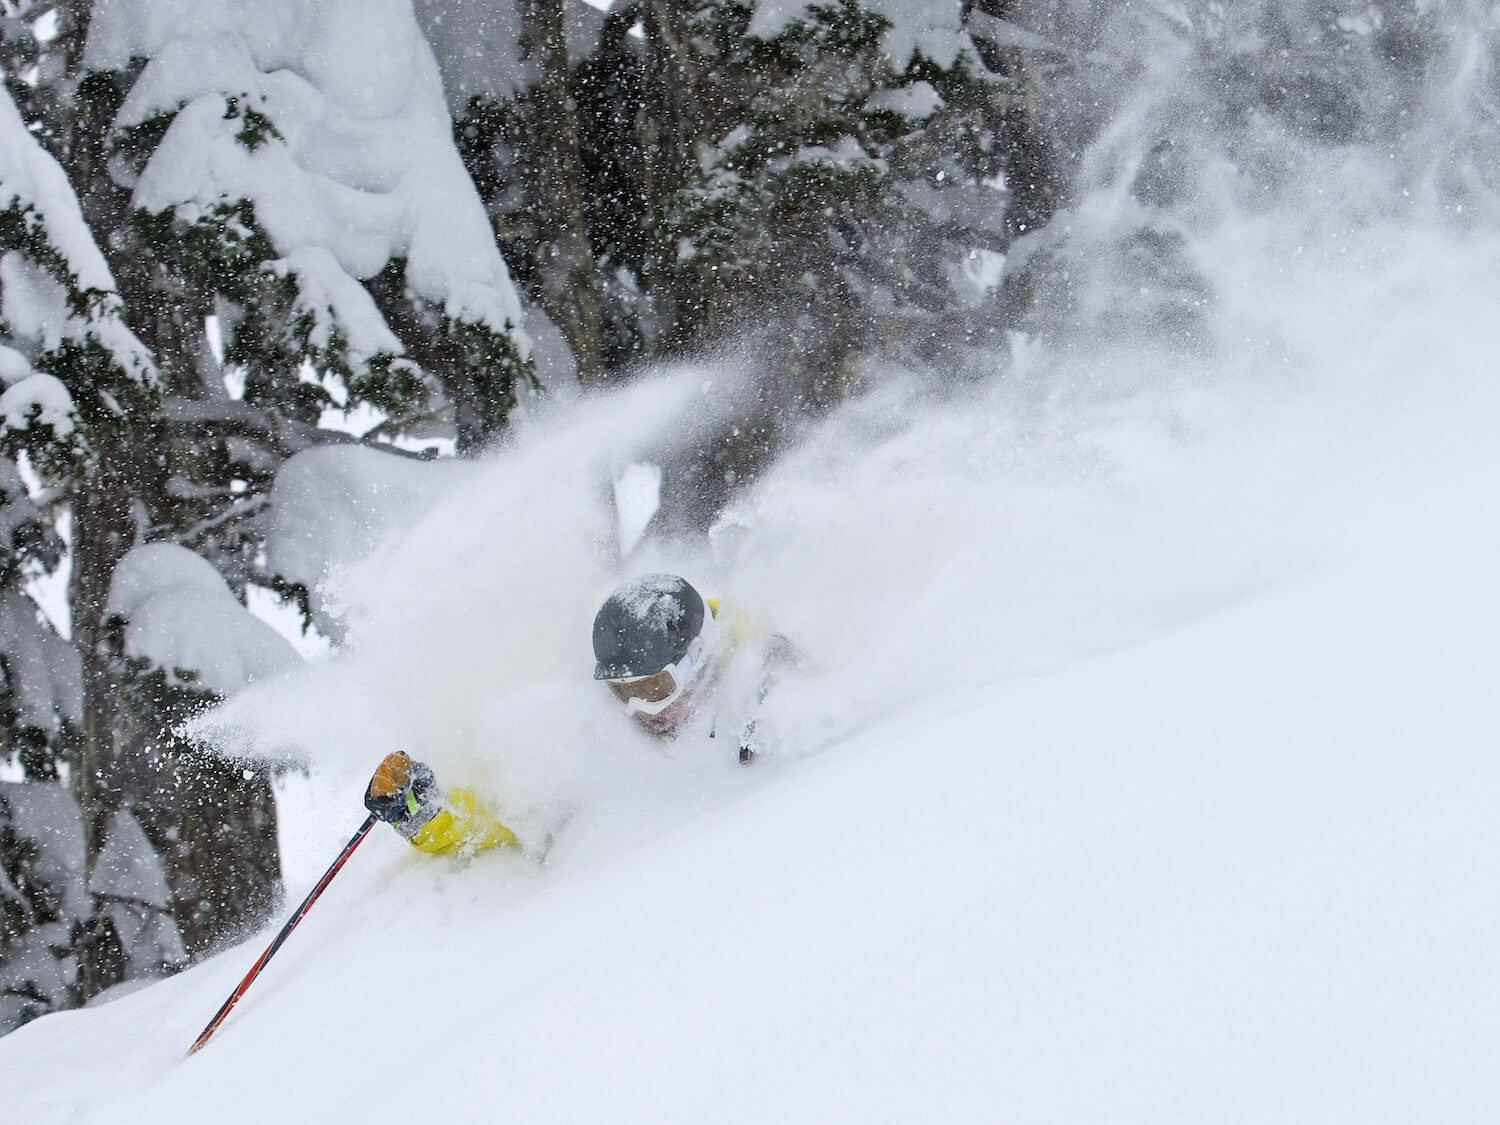 skiing powder that is neck deep